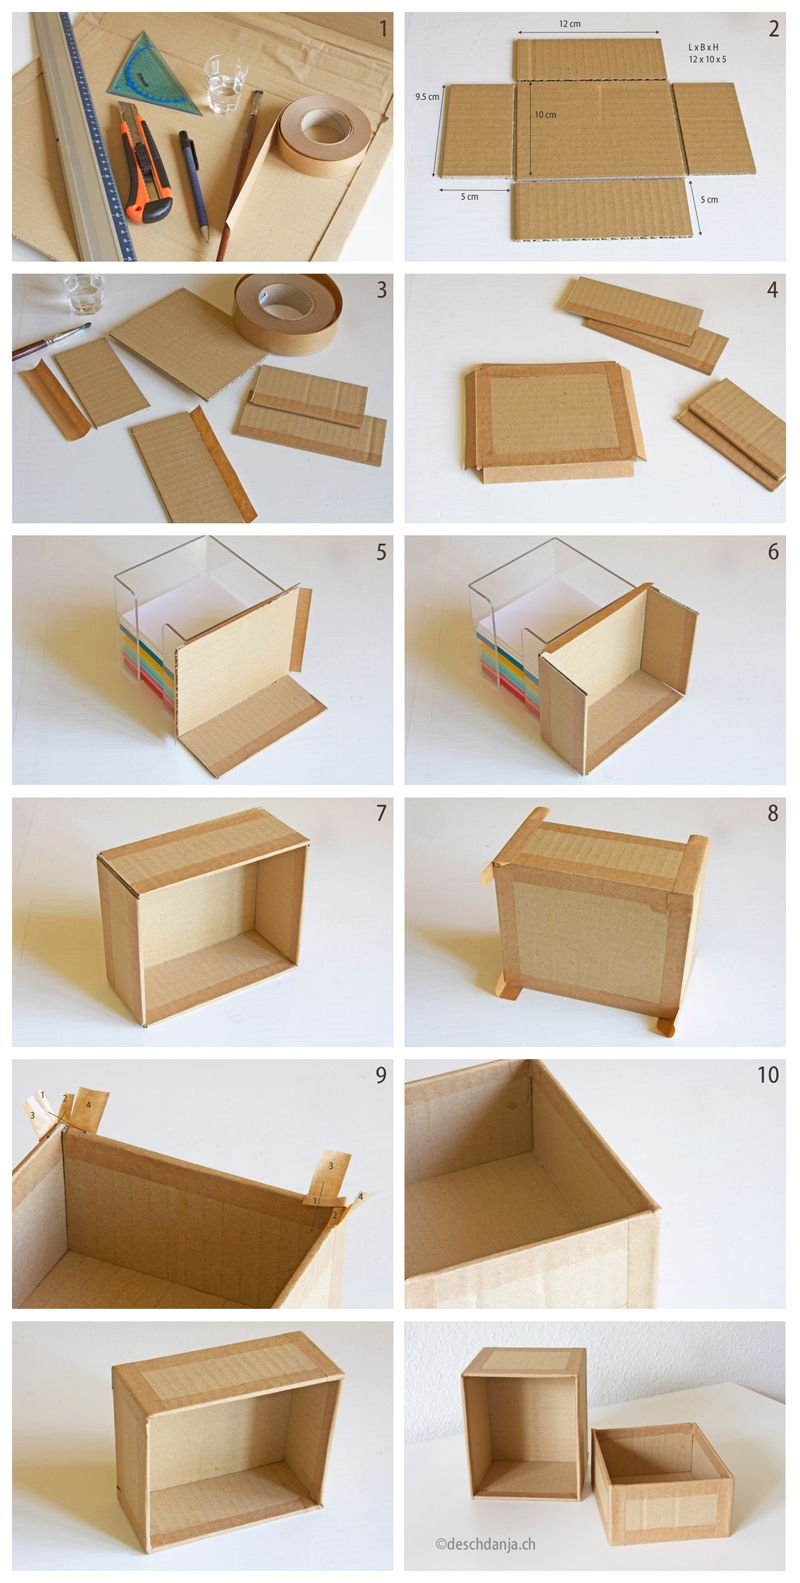 comment fabriquer sa propre bo te de rangement en carton cartonnage carton diy rangement. Black Bedroom Furniture Sets. Home Design Ideas